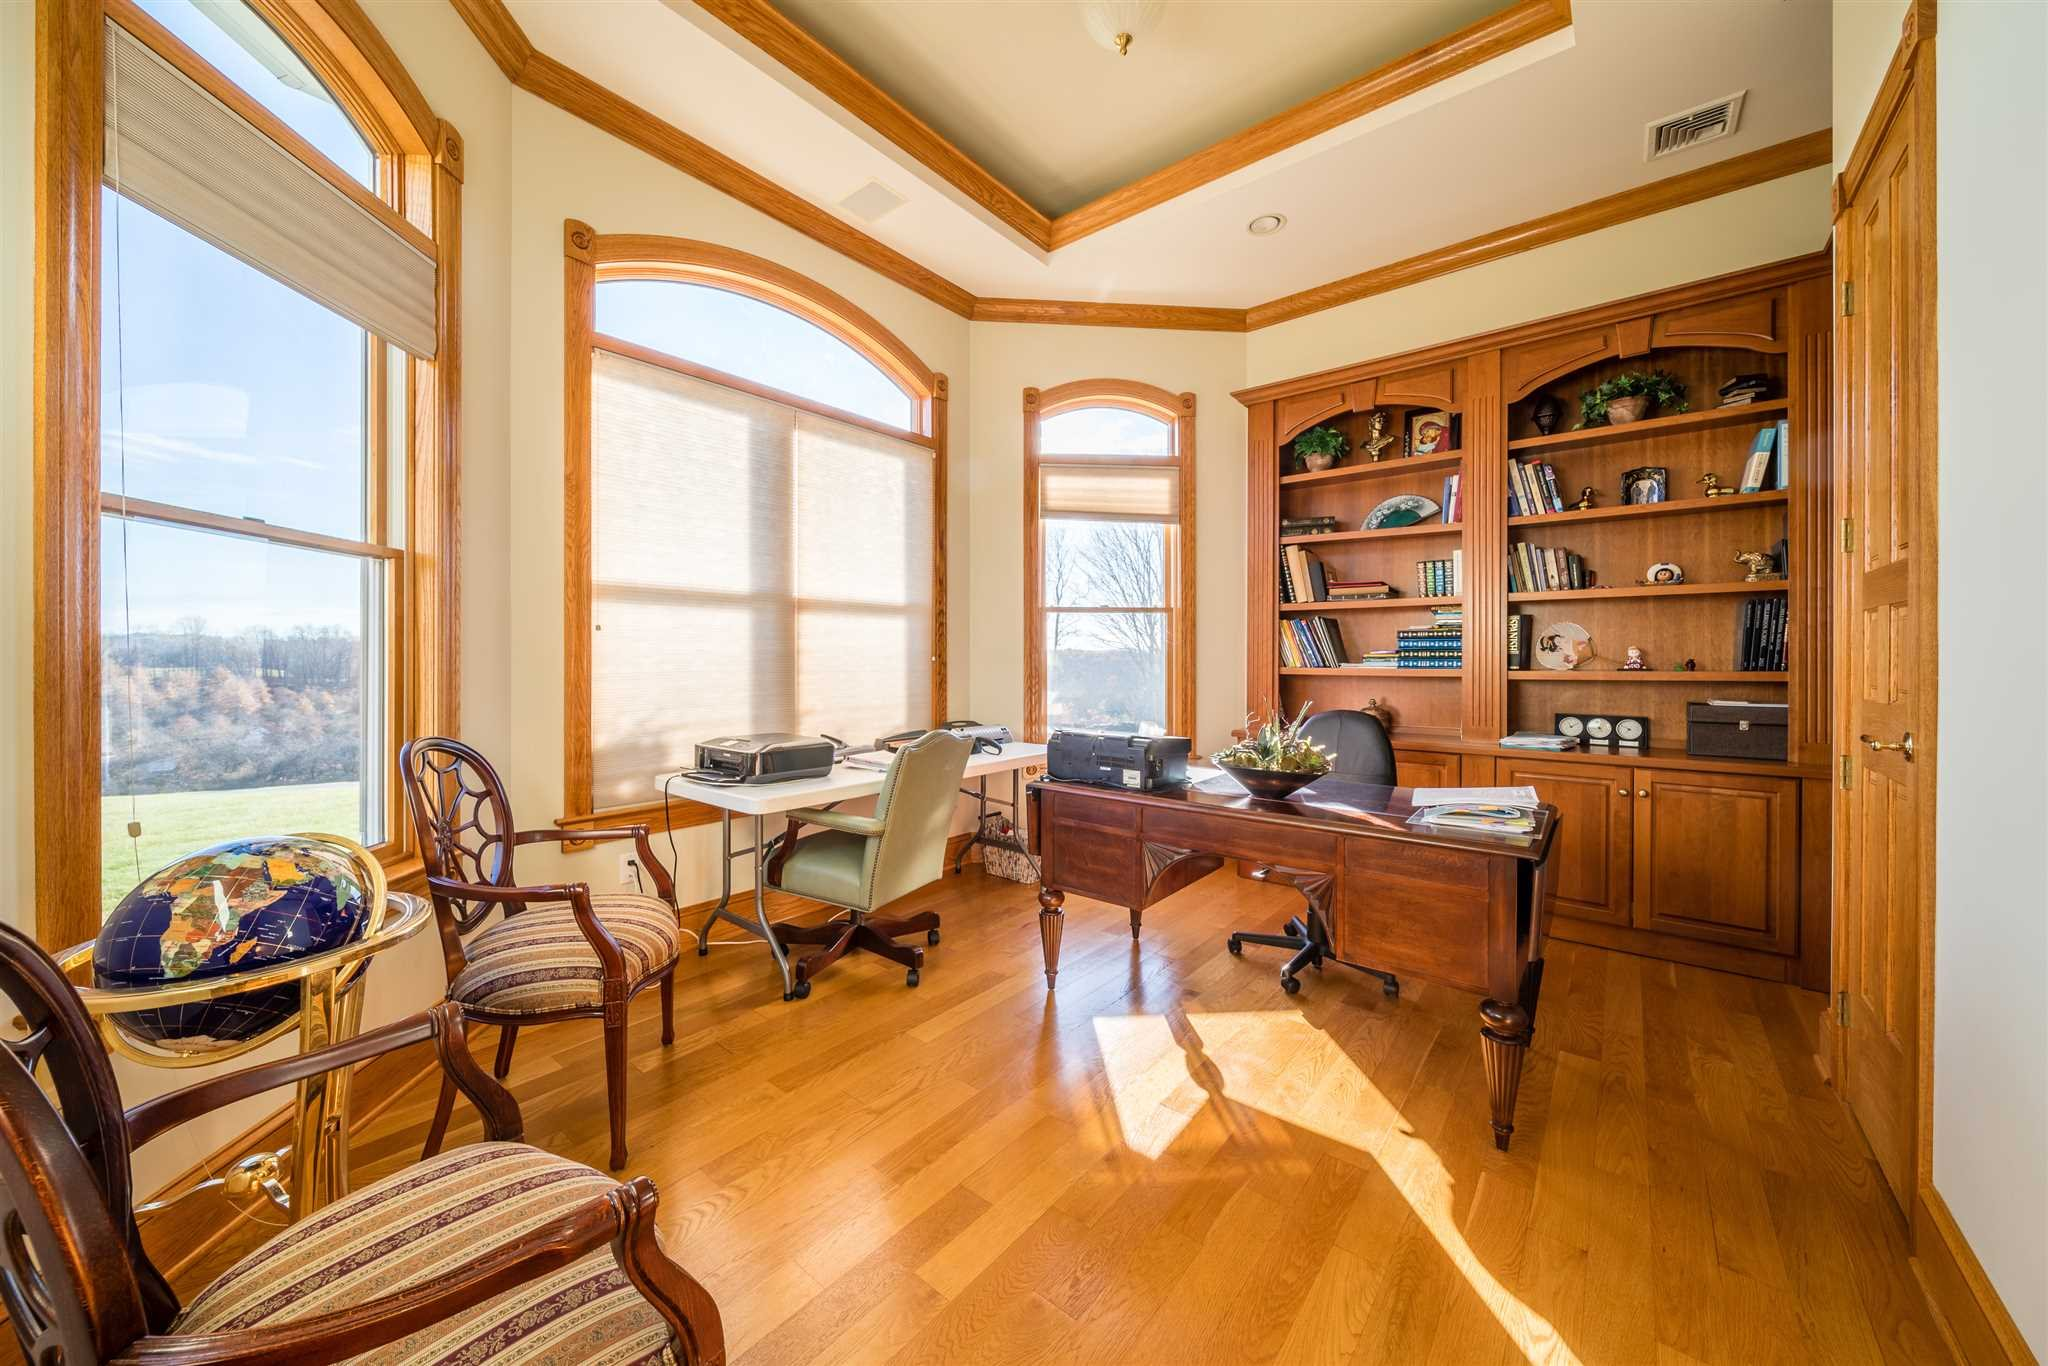 Additional photo for property listing at 129 WEY ROAD 129 WEY ROAD Rhinebeck, New York 12572 United States